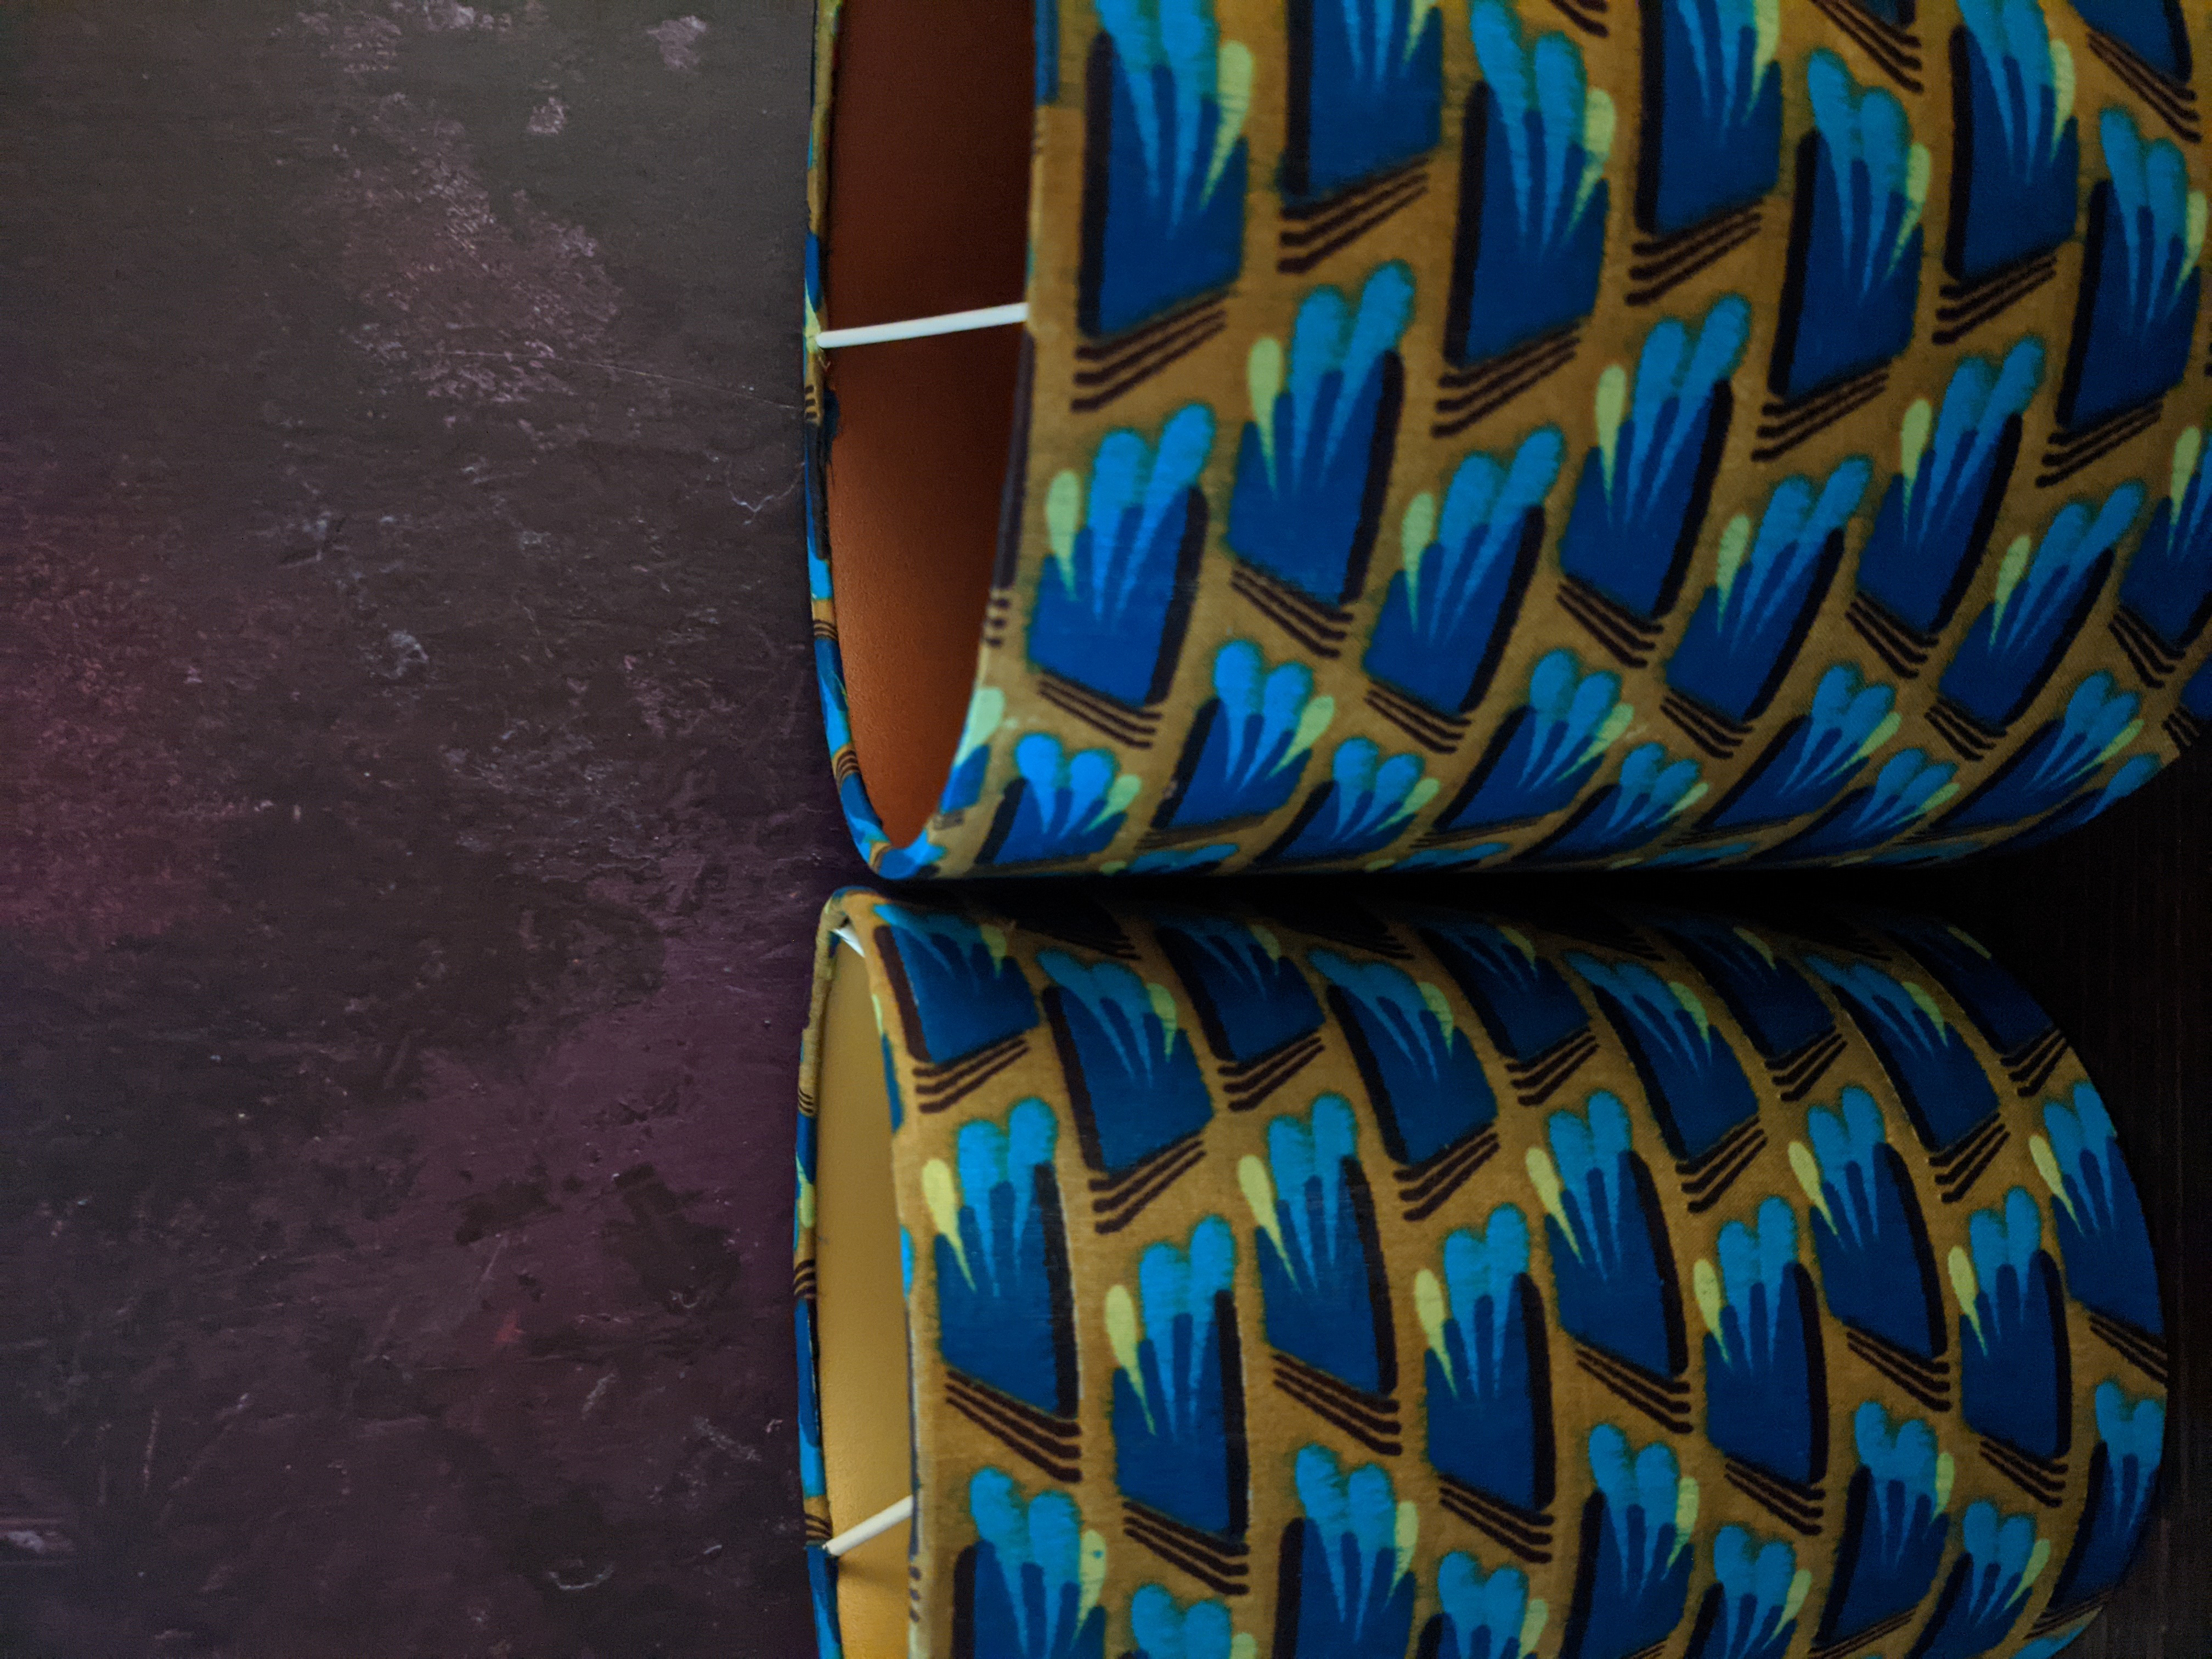 Gold & bronze inner lined table lampshade made in a gorgeous Olive green and blue mid-century modern African wax print fabric